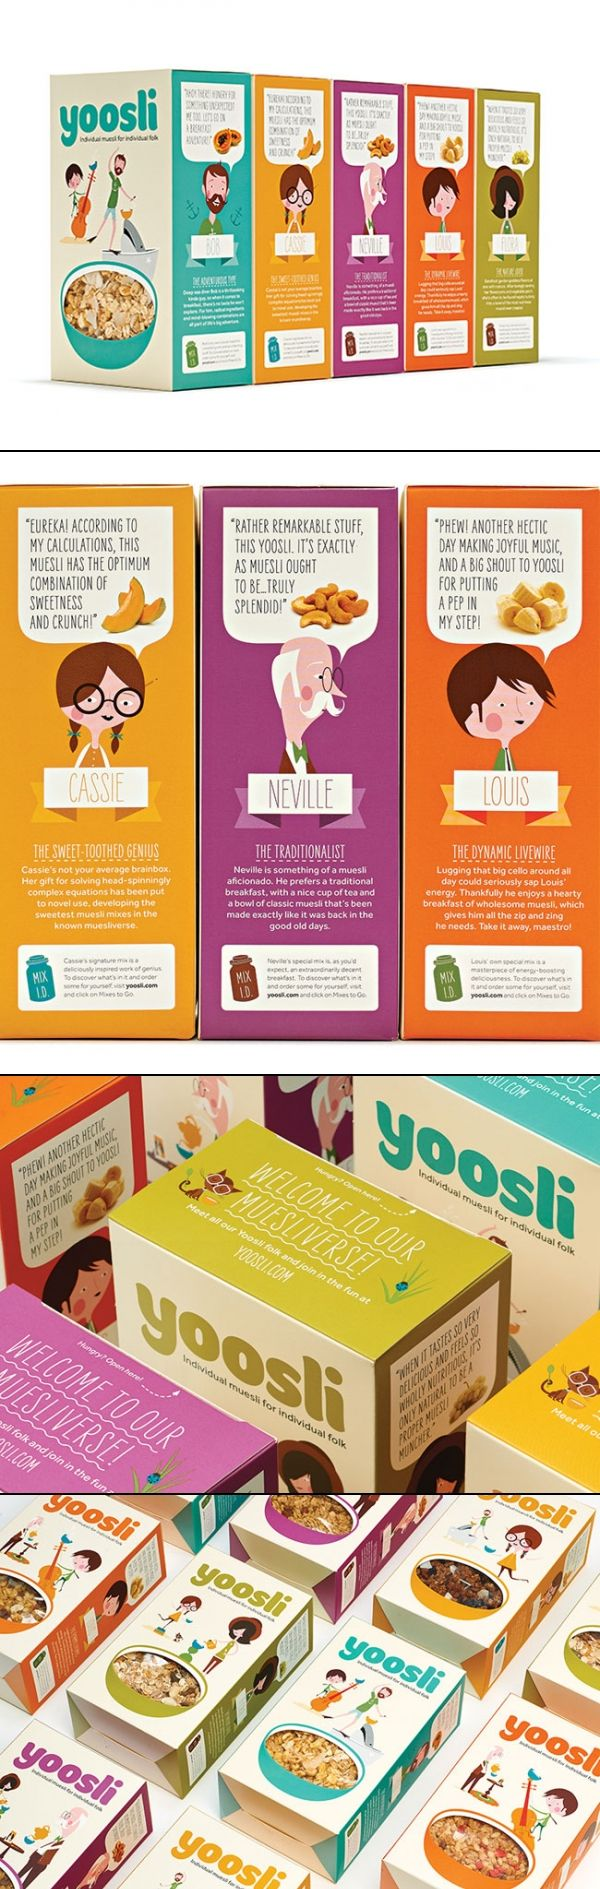 Yoosli muesli #packaging